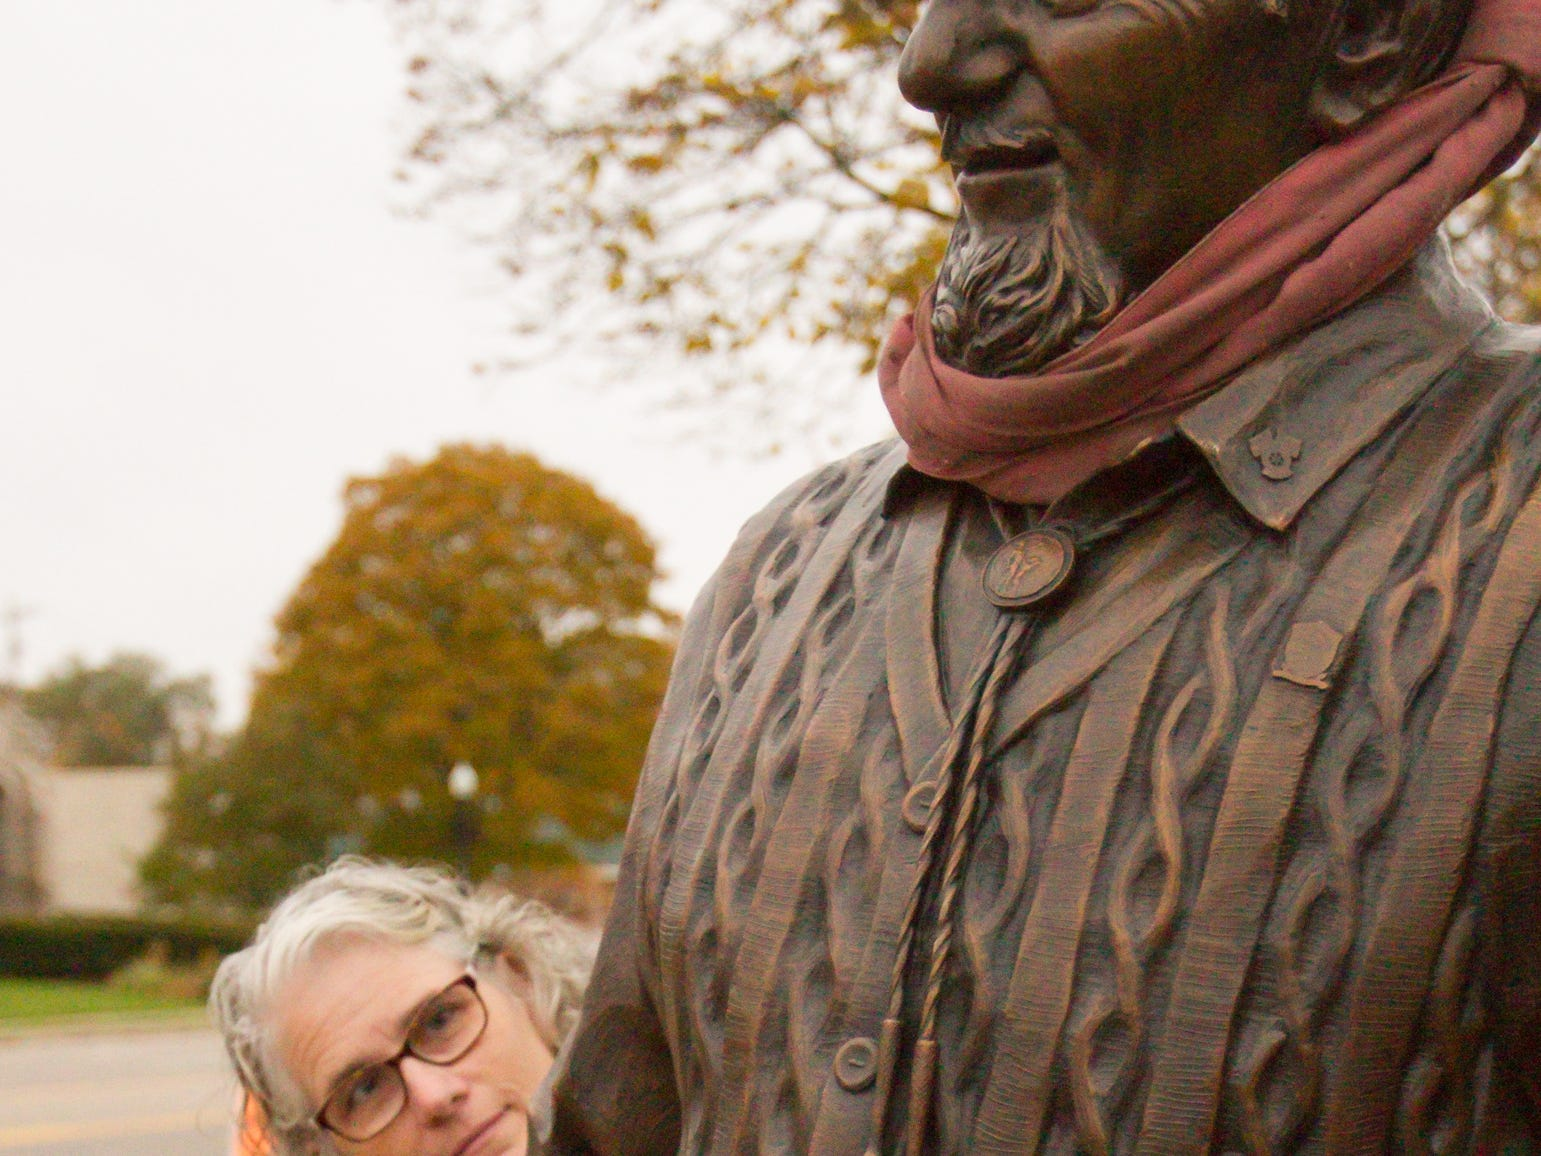 Howell Carnegie District Library director Holly Ward Lamb studies the statue of Duane Zemper, who volunteered countless hours in the archives of the library, as the Zemp Legacy Statue is positioned Thursday, Nov. 1, 2018.